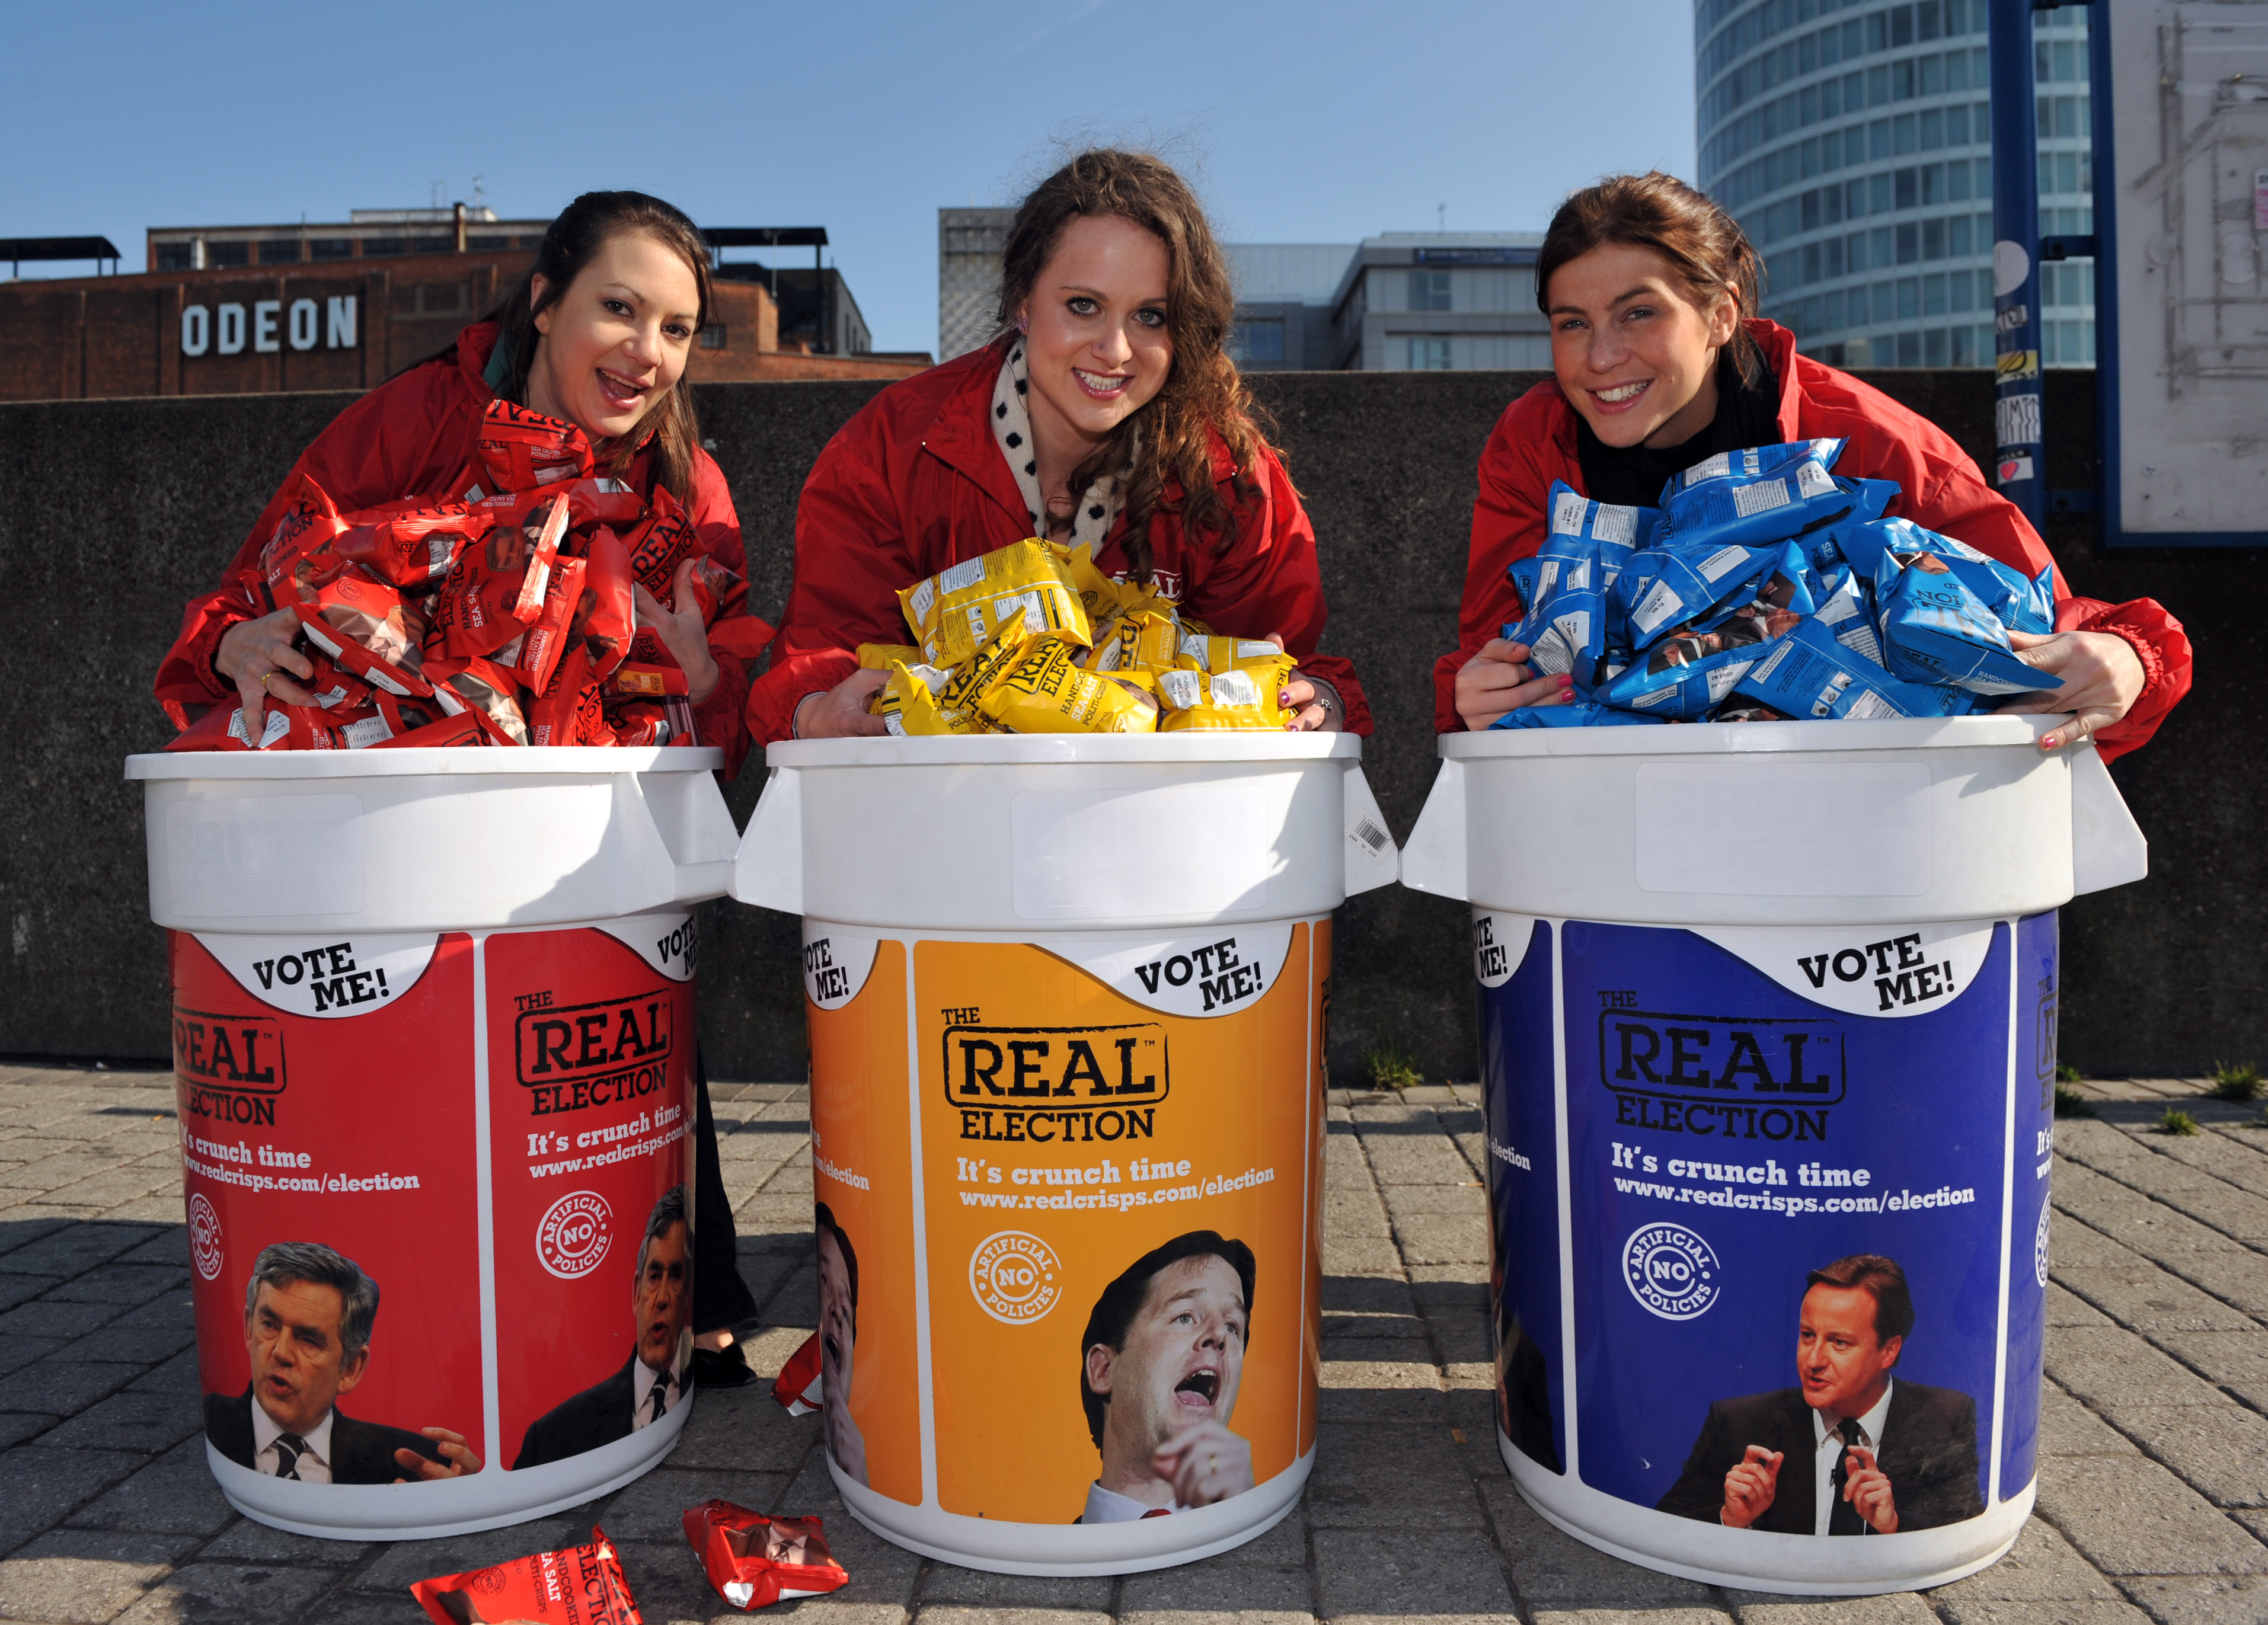 Experiential Marketing with Real Crisps-Product Sampling, marketing campaign, active campaign, promotion, shopper marketing